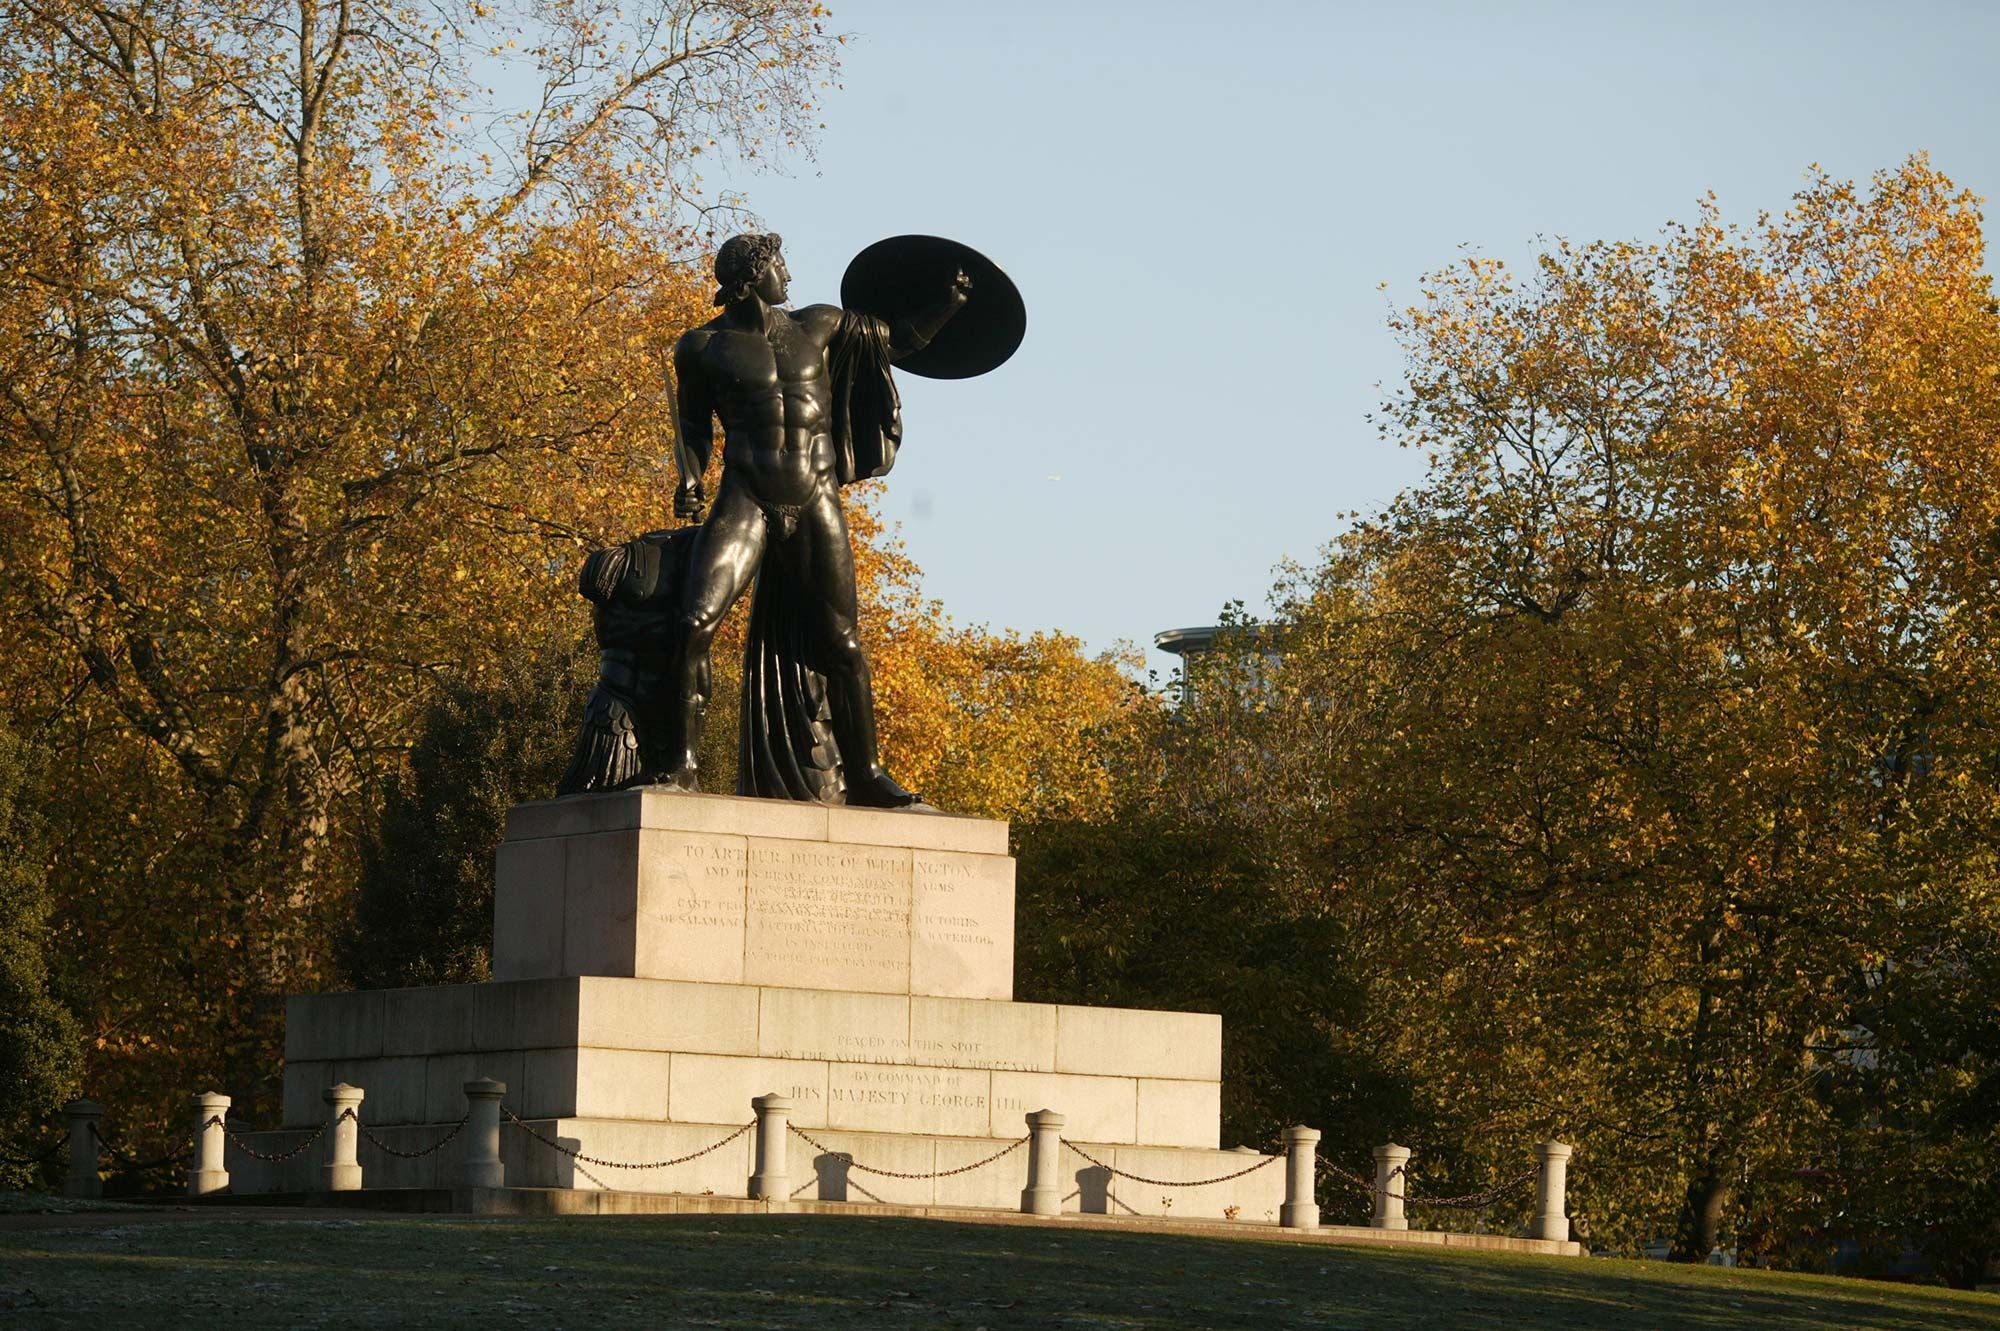 Statue of Achilles in Autumn